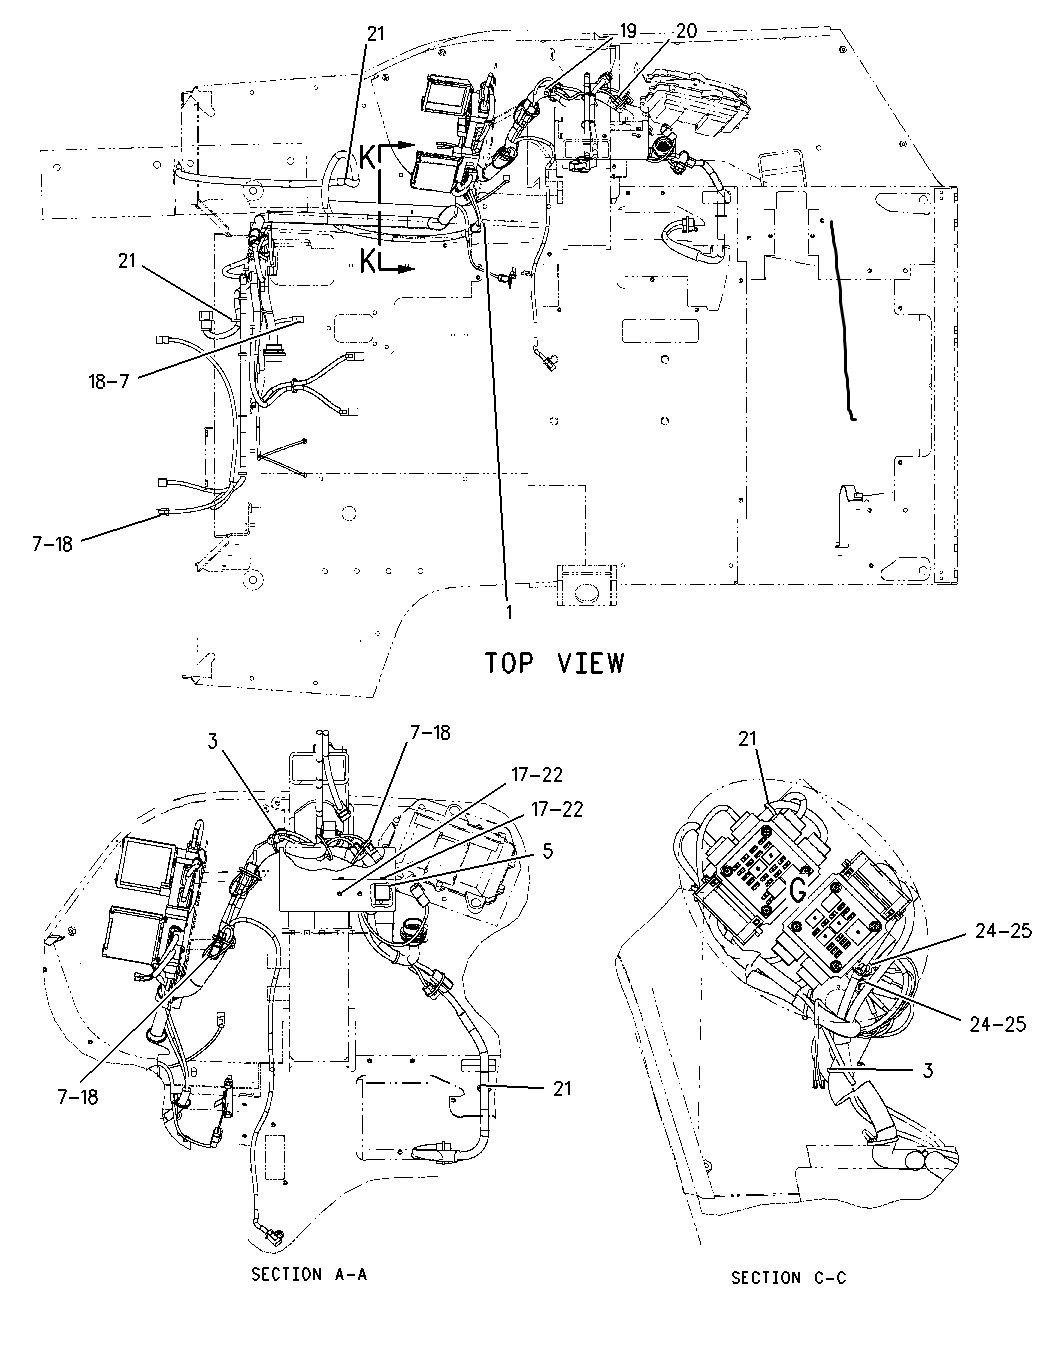 Wiring Diagram For Cat 420d Page 2 And Schematics 963 Engine 416e Trusted Diagrams 416b Backhoe